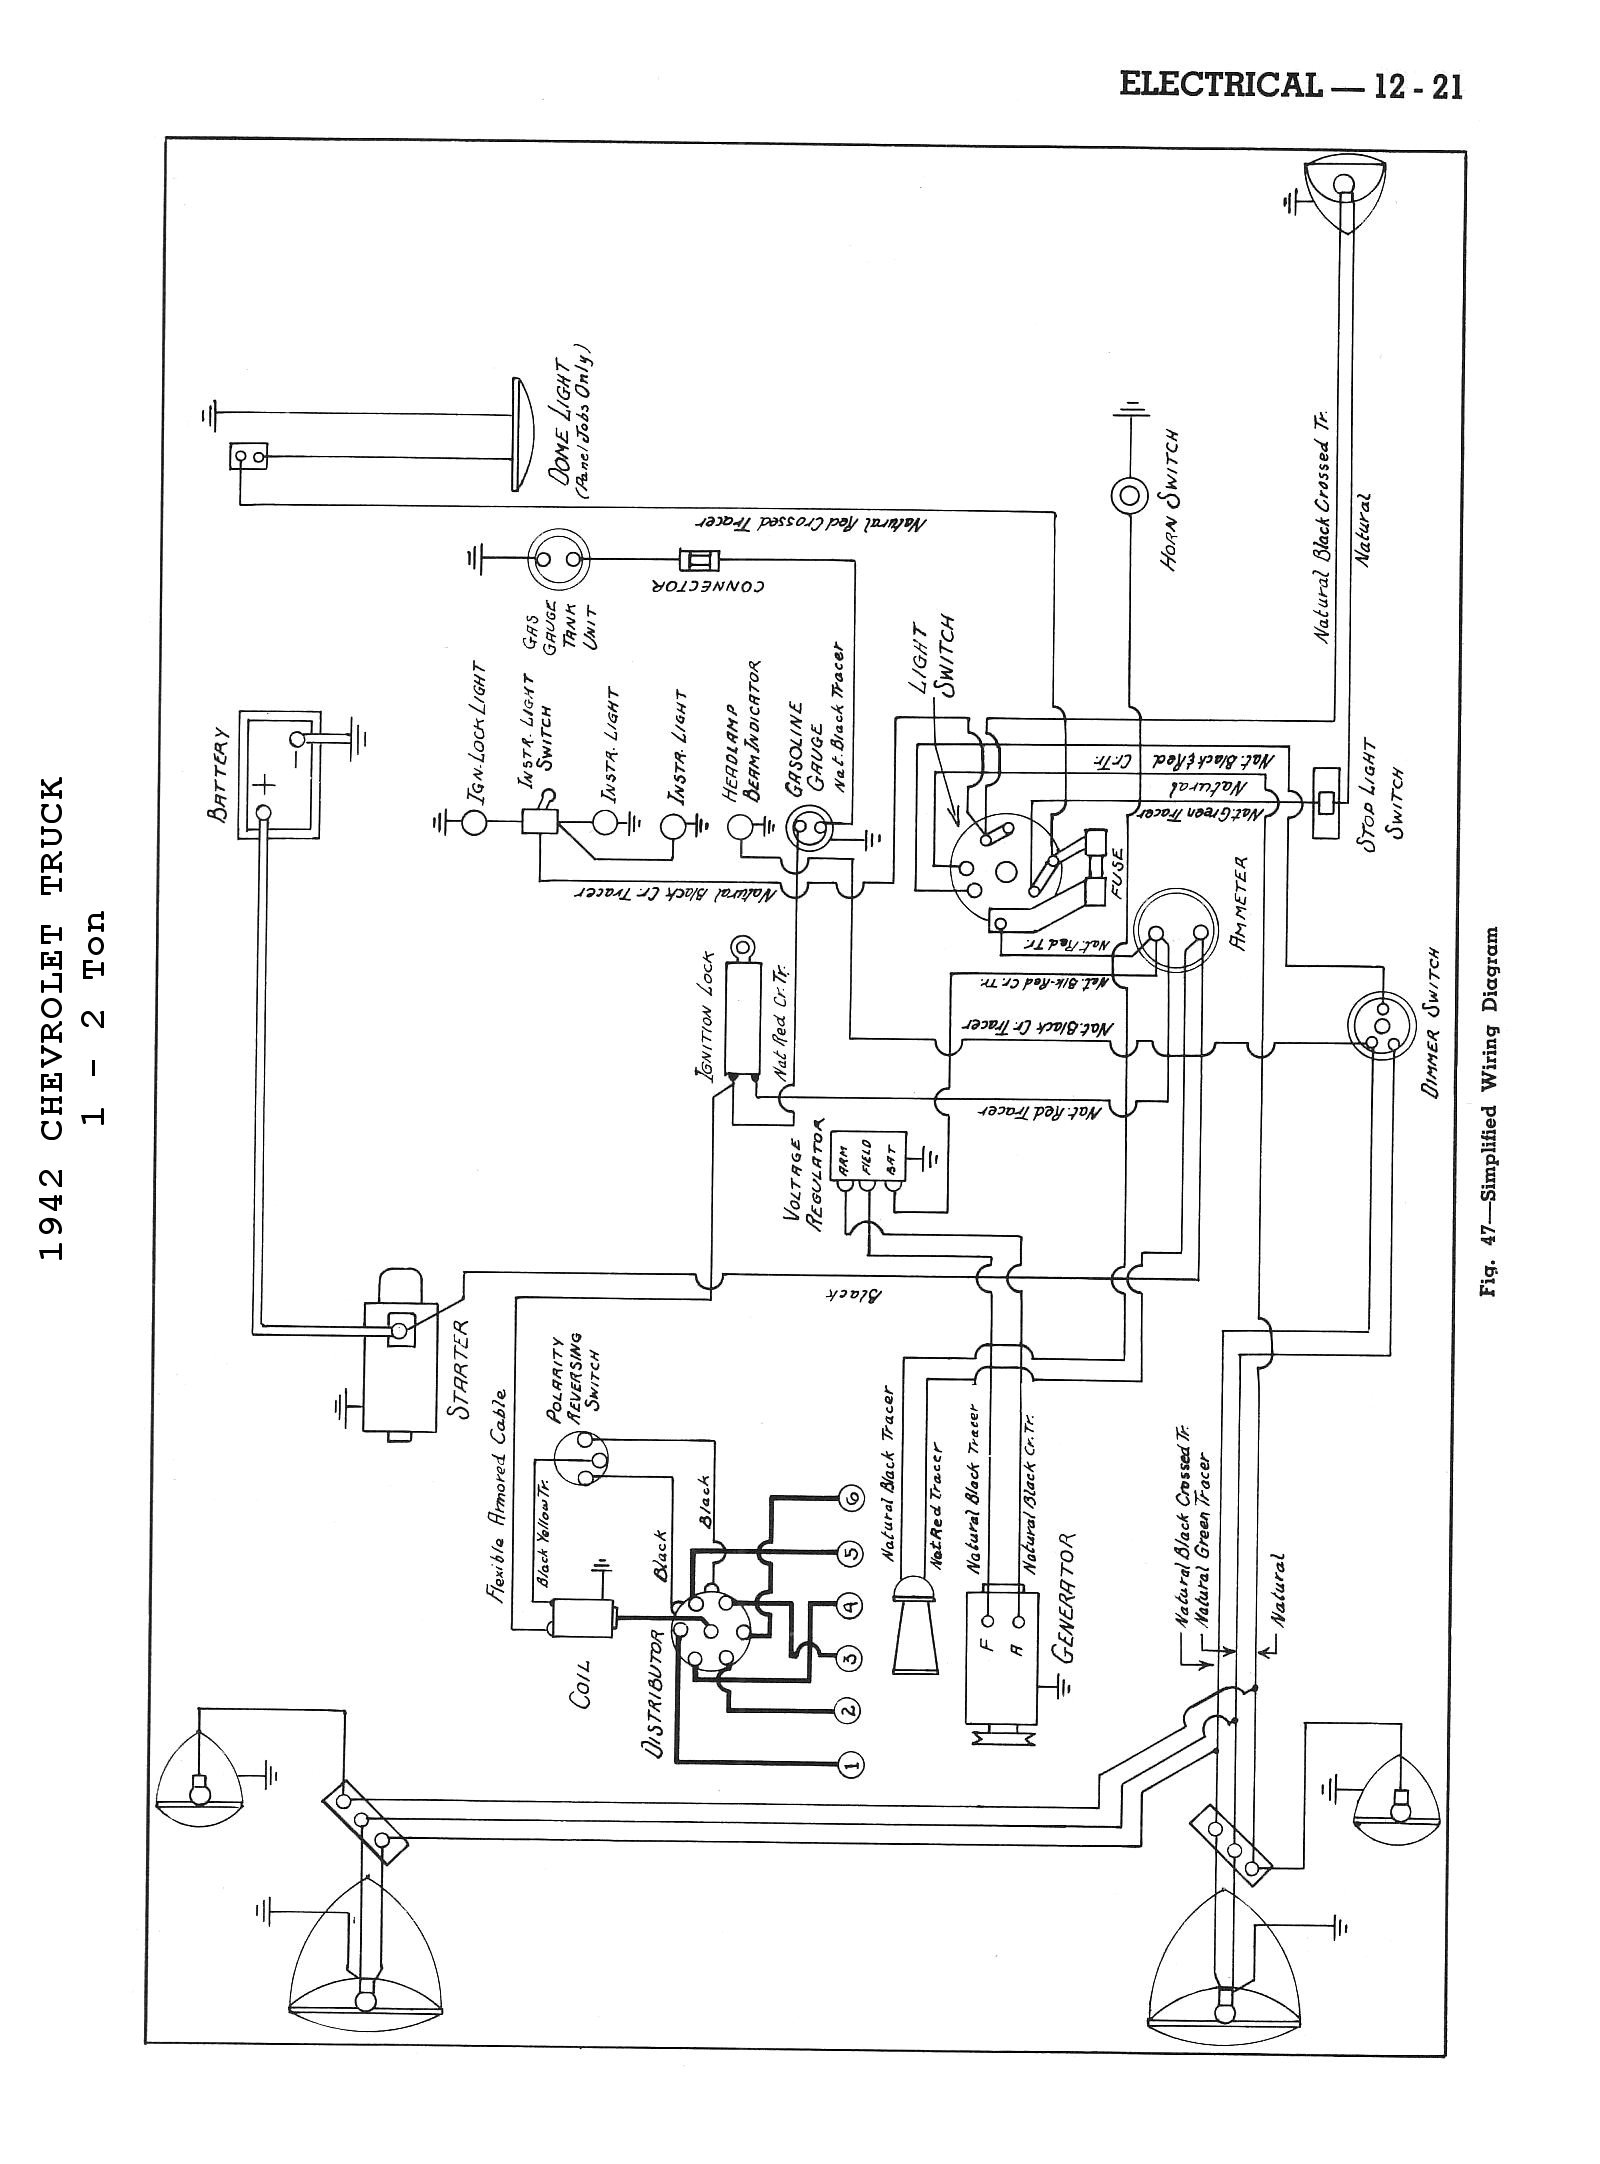 1941 ford pickup truck wiring diagram